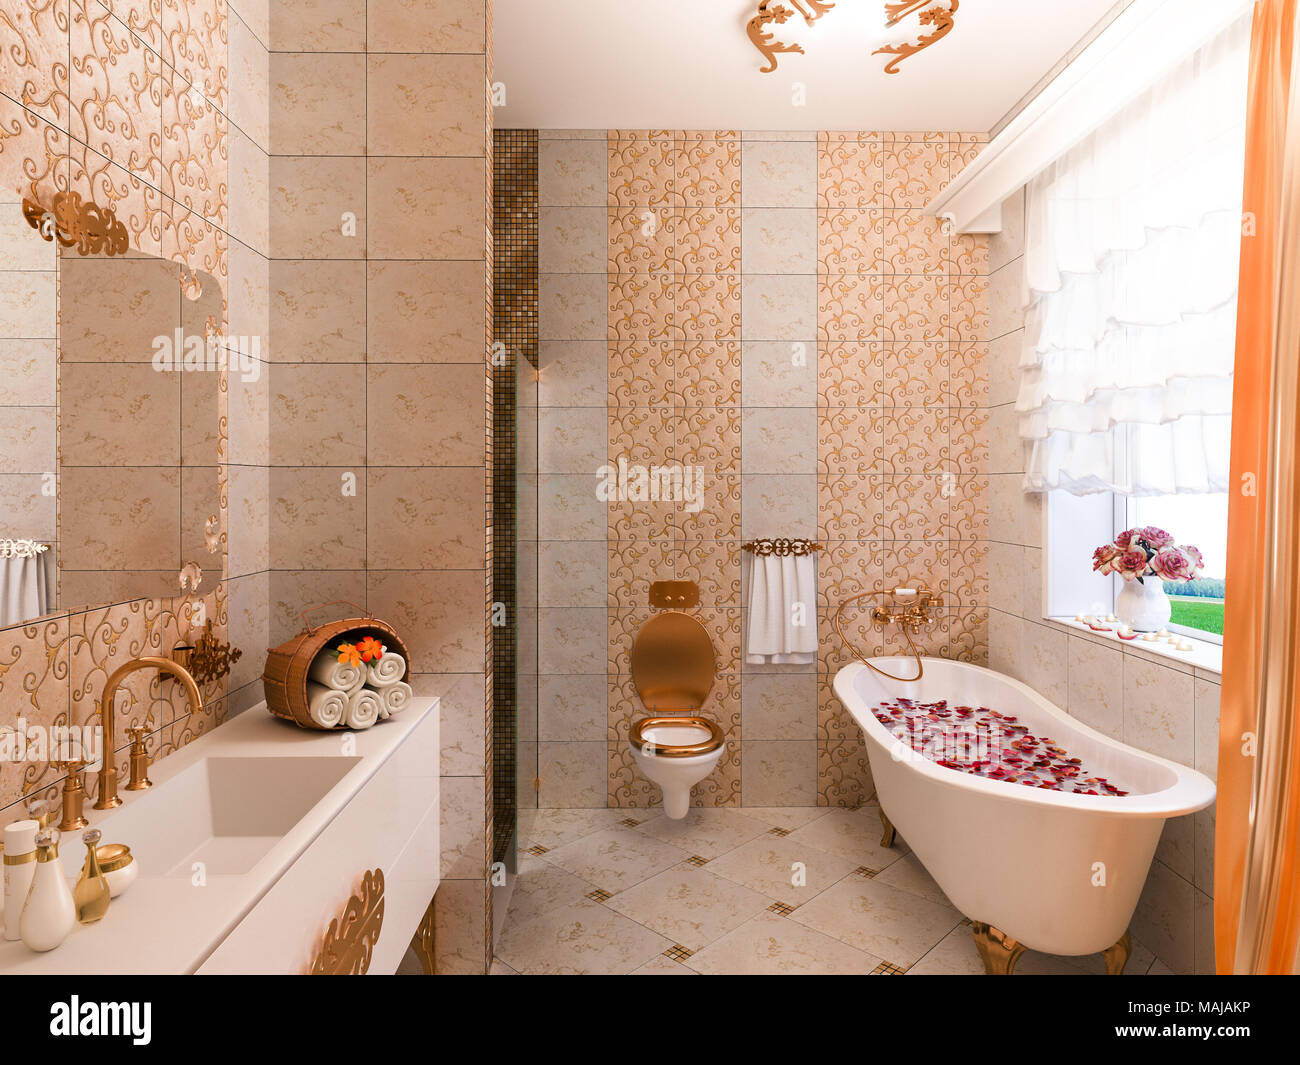 3d Illustration Of An Interior Design Of A Bathroom In A Classic Style.  Render Freestanding Bath And Shower